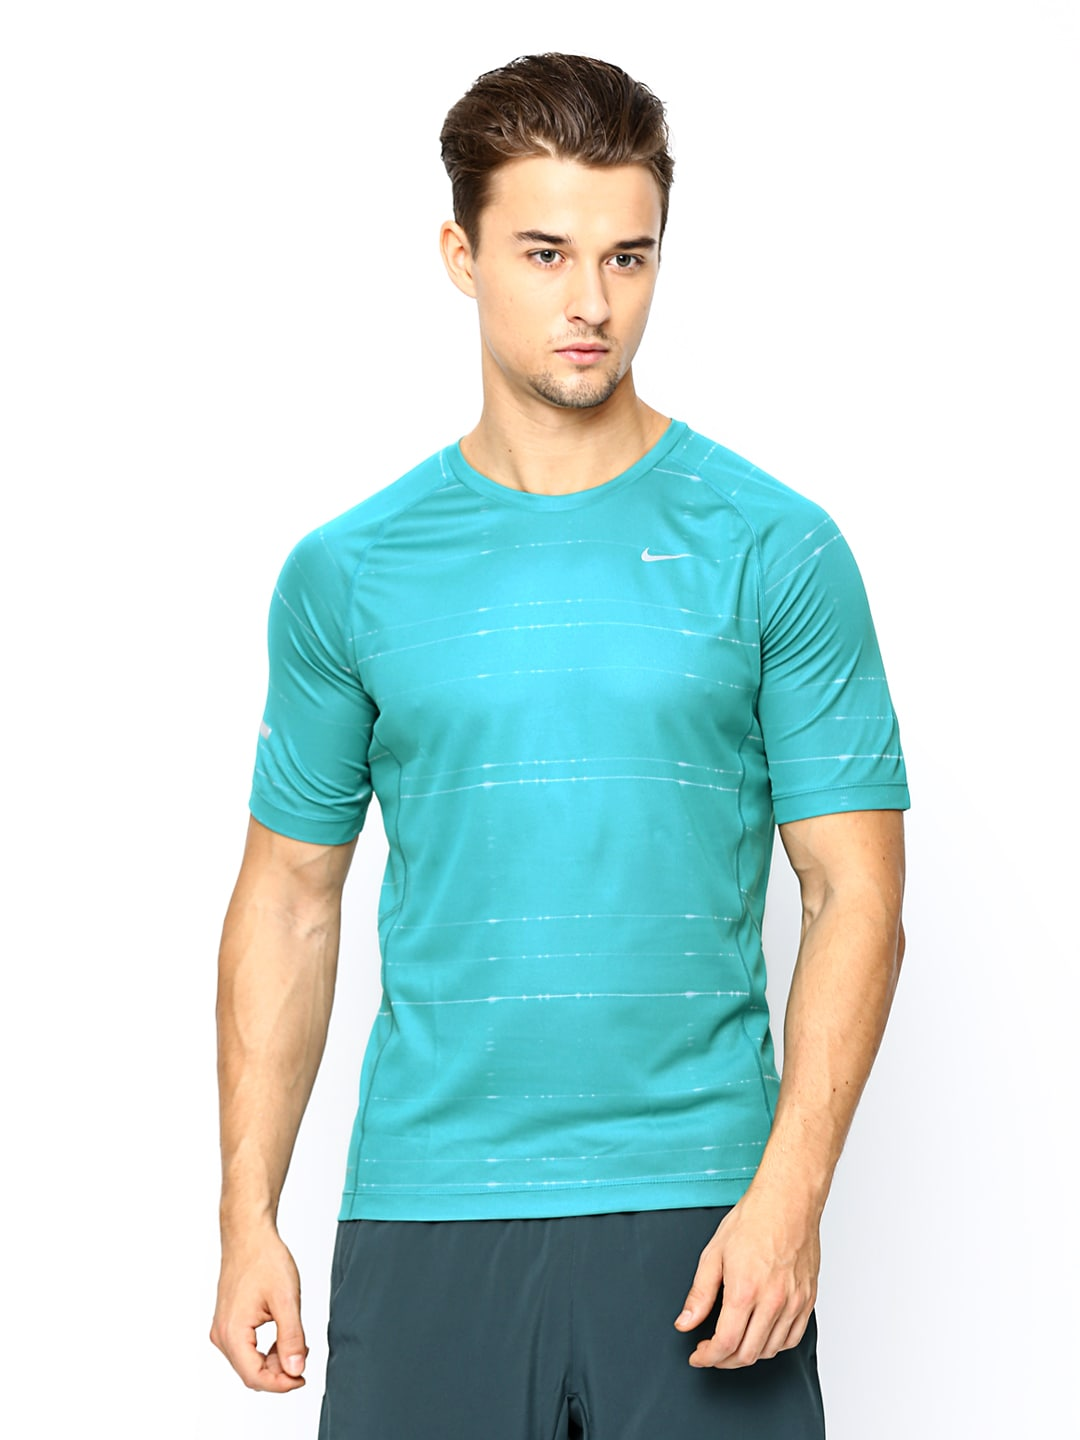 Nike style code 619415 300 for Printed t shirts india